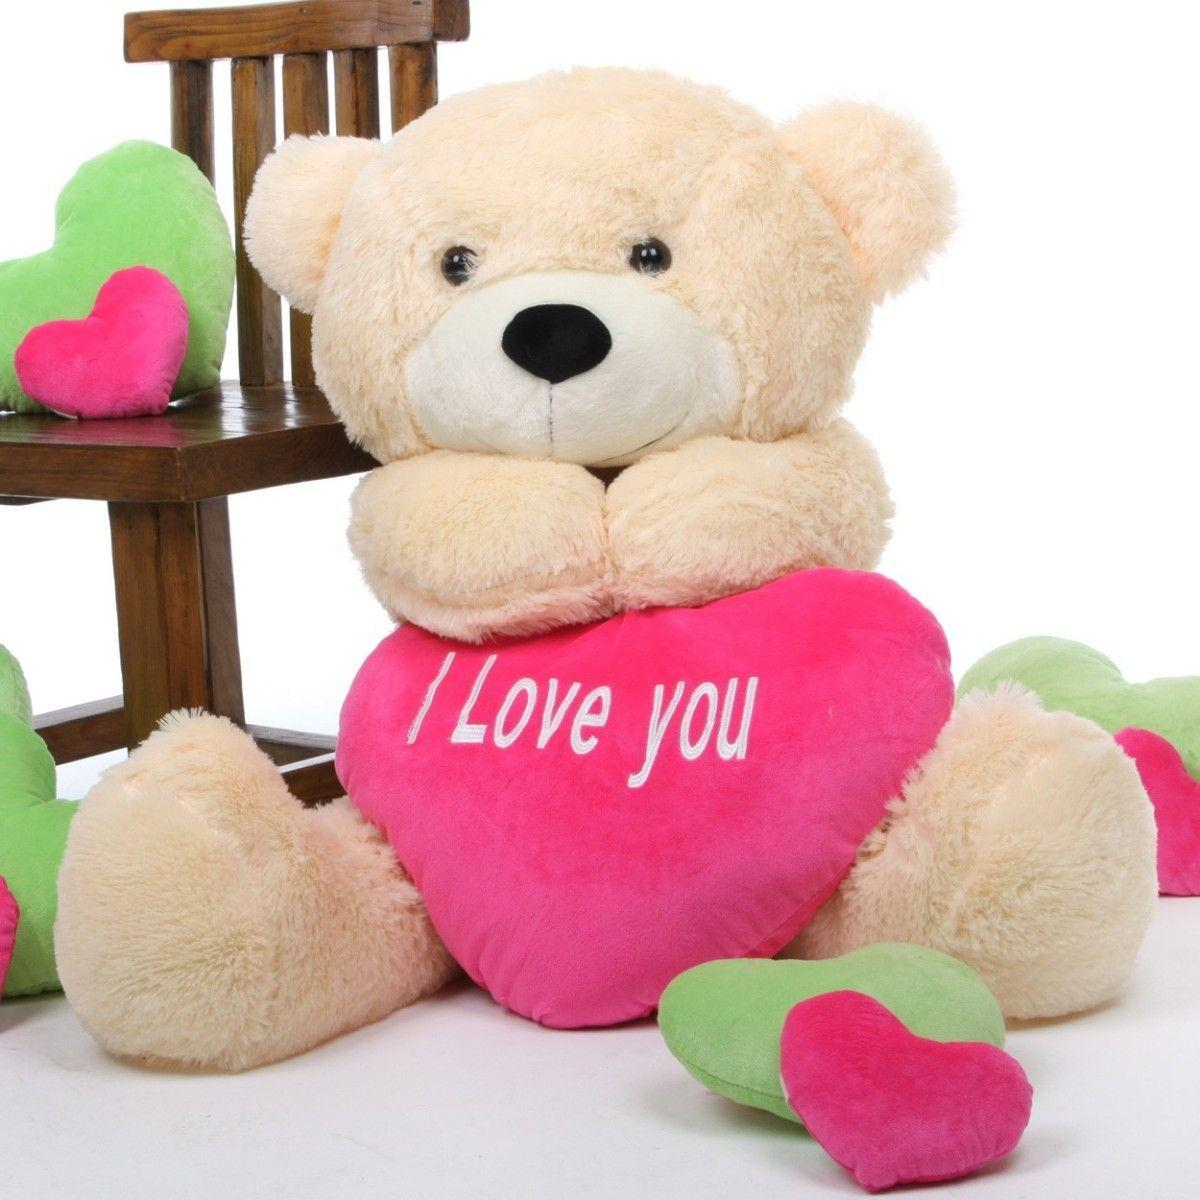 I Love You Wallpaper For Fb : cute Teddy Bear Wallpapers - Wallpaper cave